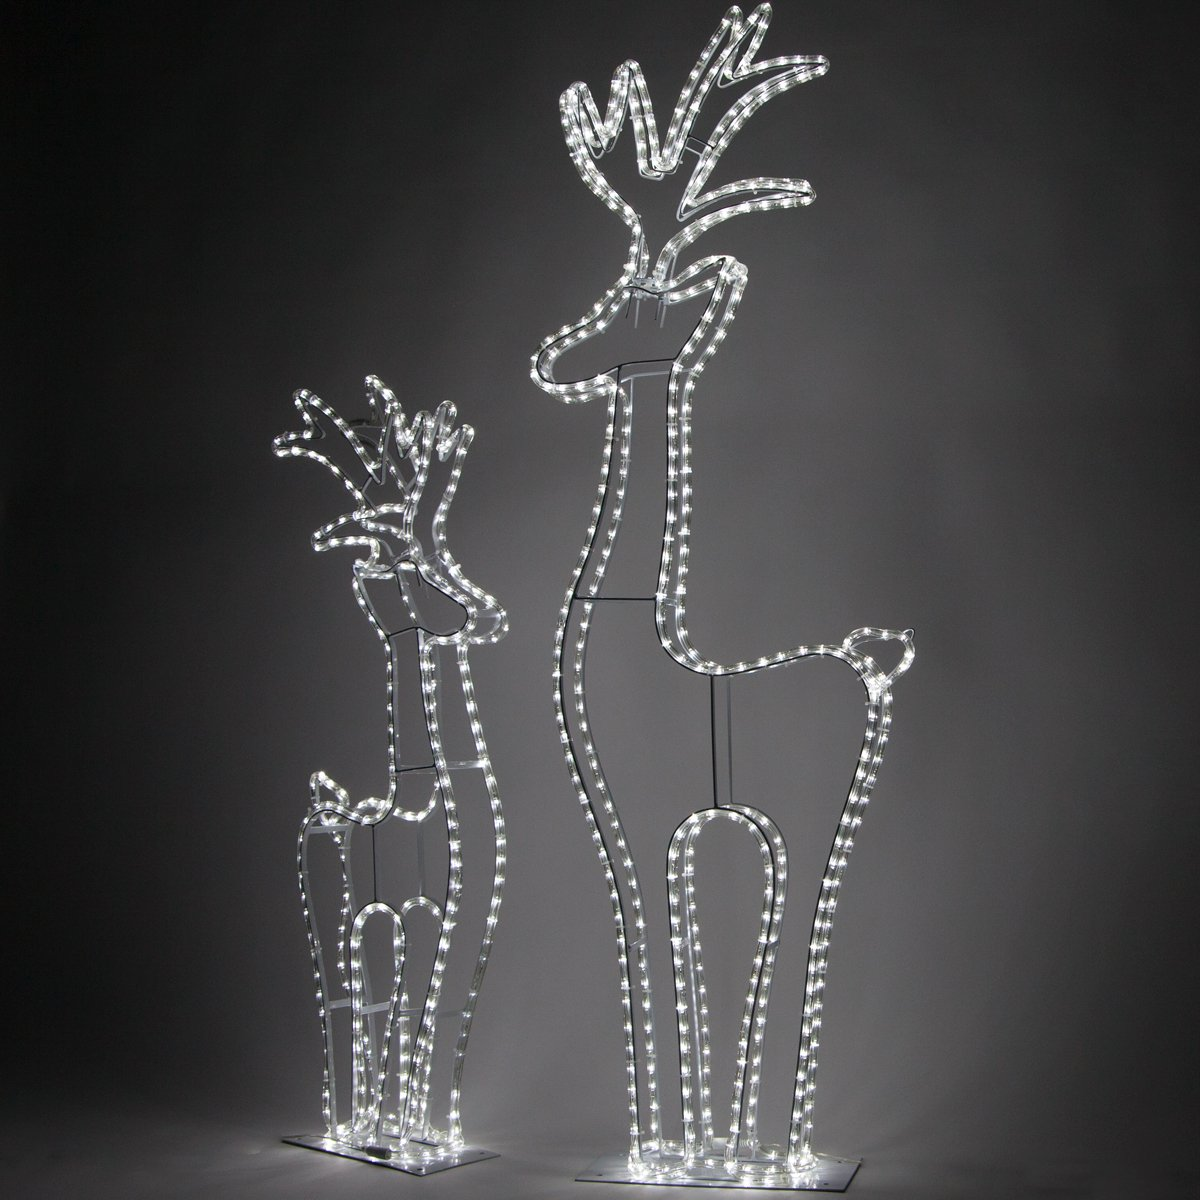 Wintergreen Lighting 3D Cool White LED Christmas Reindeer Yard Decorations (4 Ft Tall, 324 Lights)